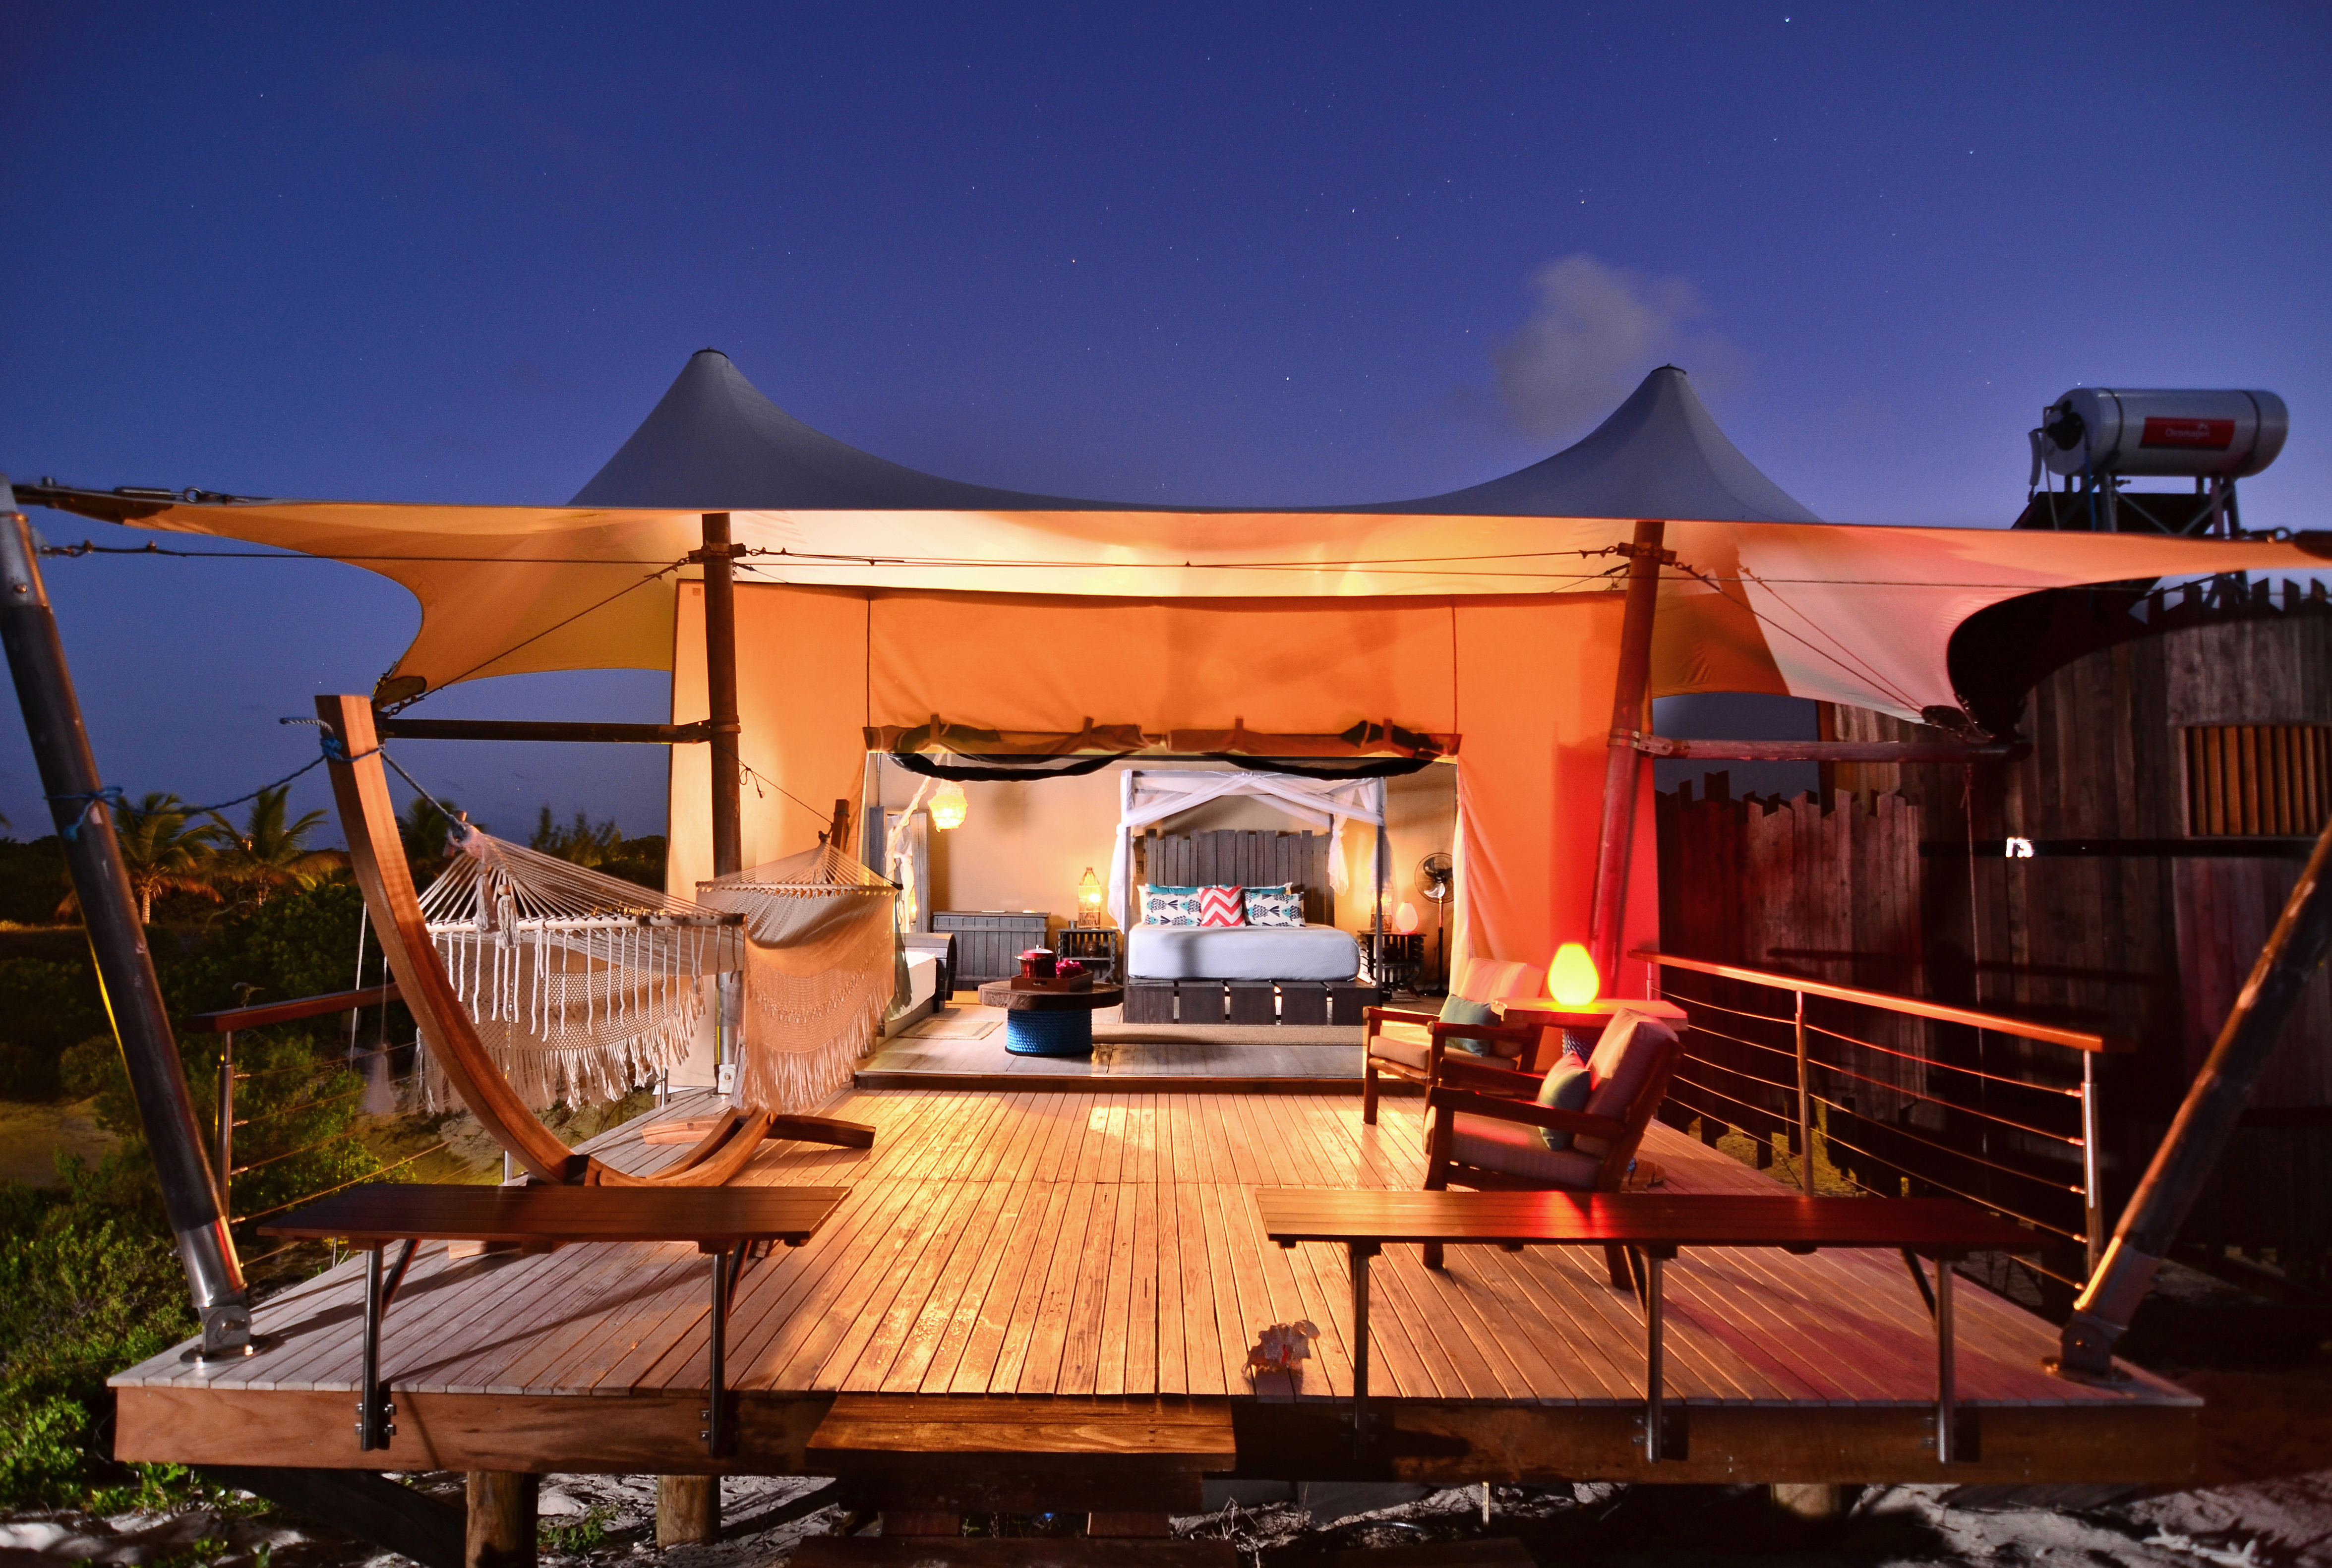 Anegada Beach Club S Luxury Tents Offer Unique Glamping Experience